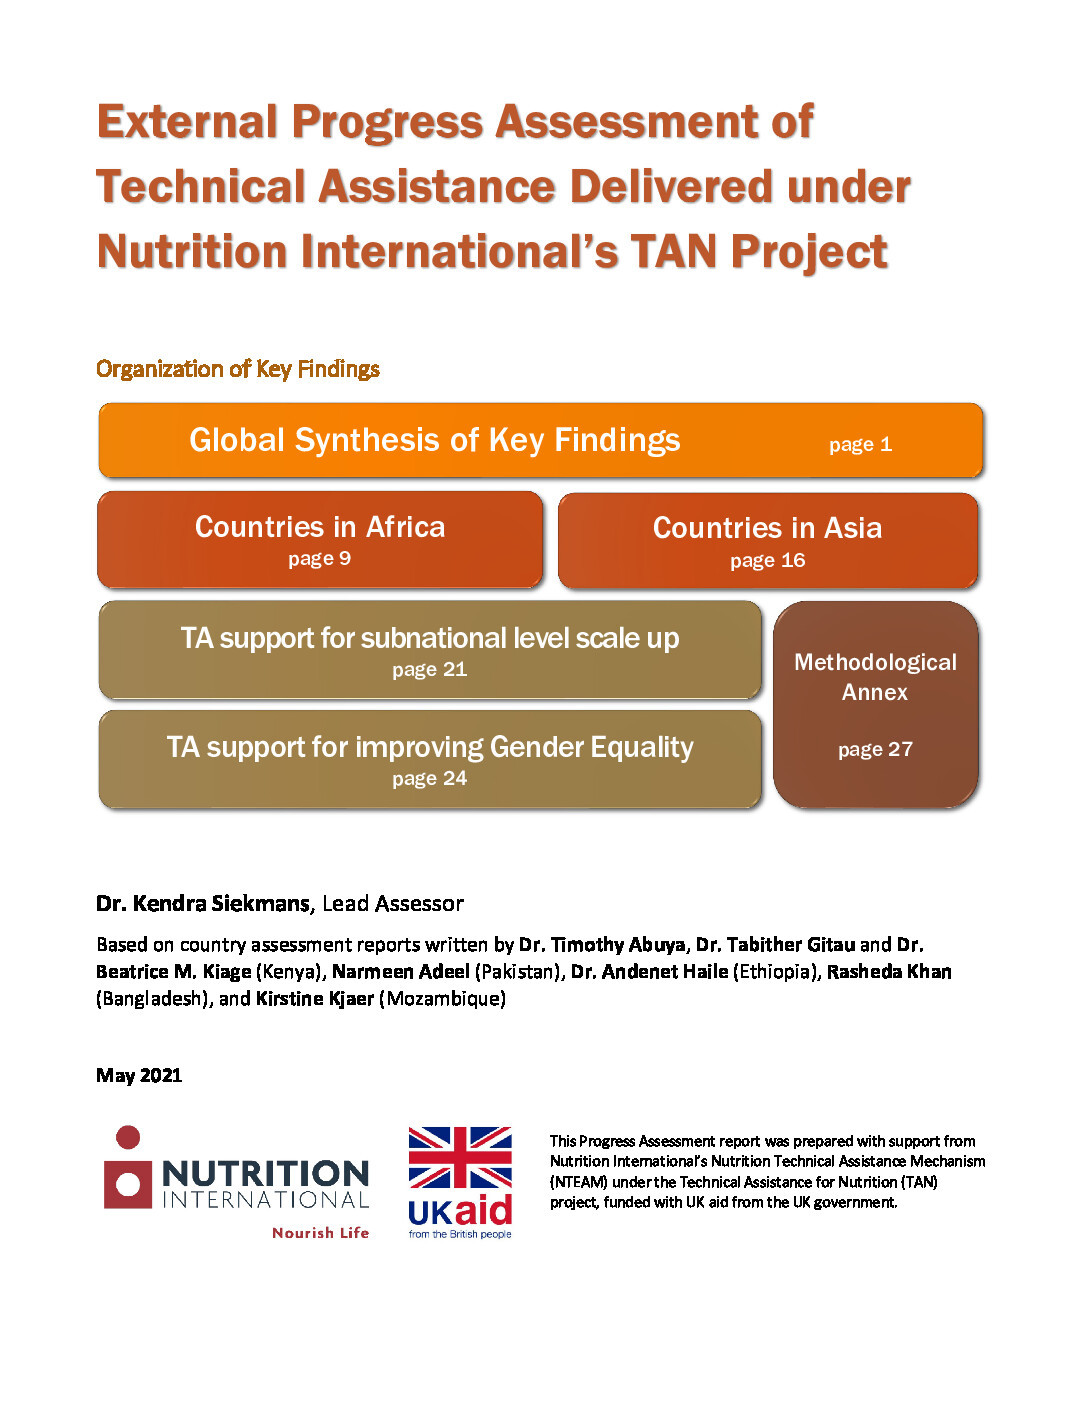 External Progress Assessment of Technical Assistance Delivered under Nutrition International's TAN Project thumbnail